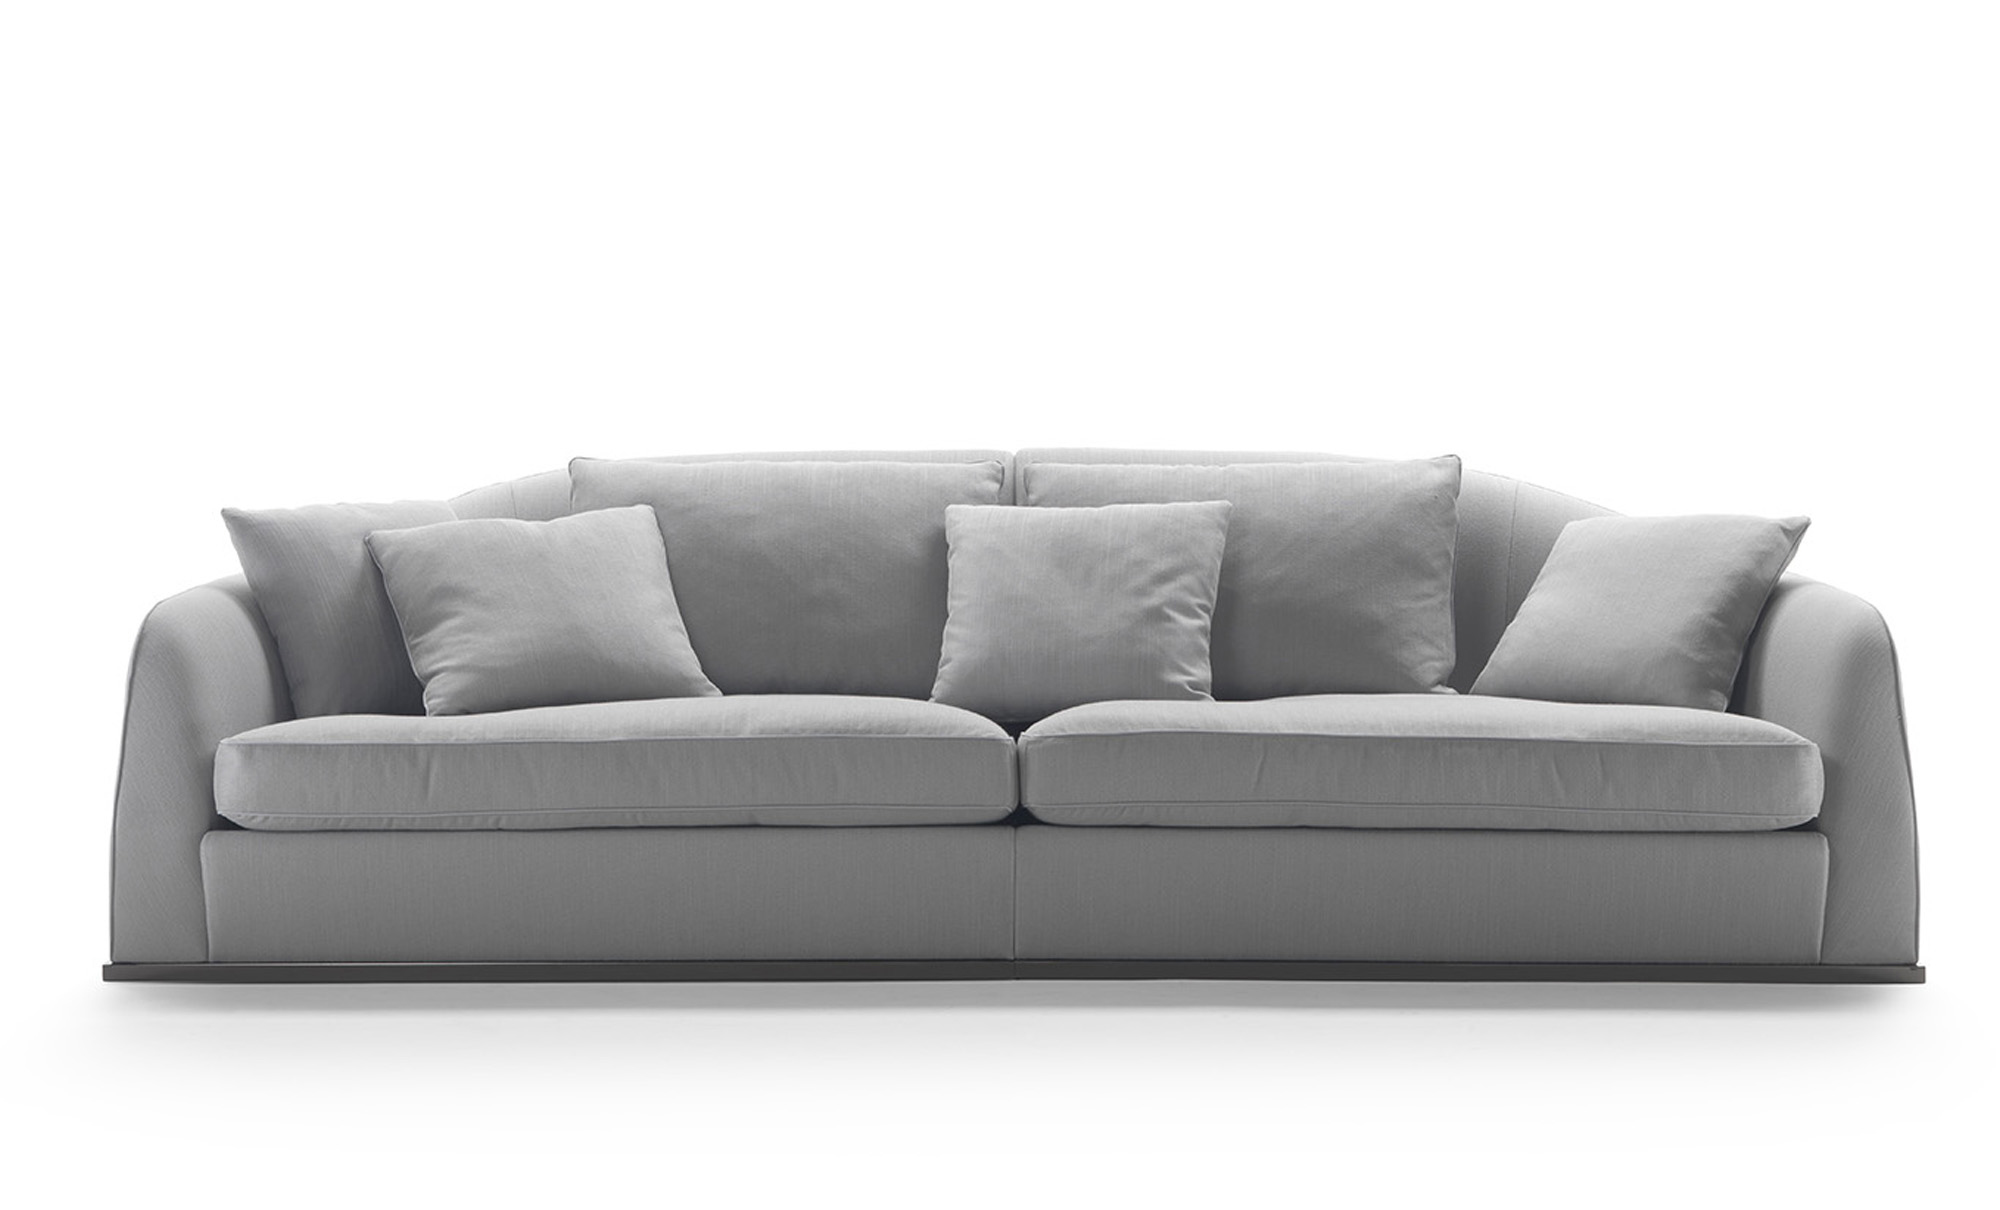 Alfred sofa fanuli furniture for Furniture sofa sale